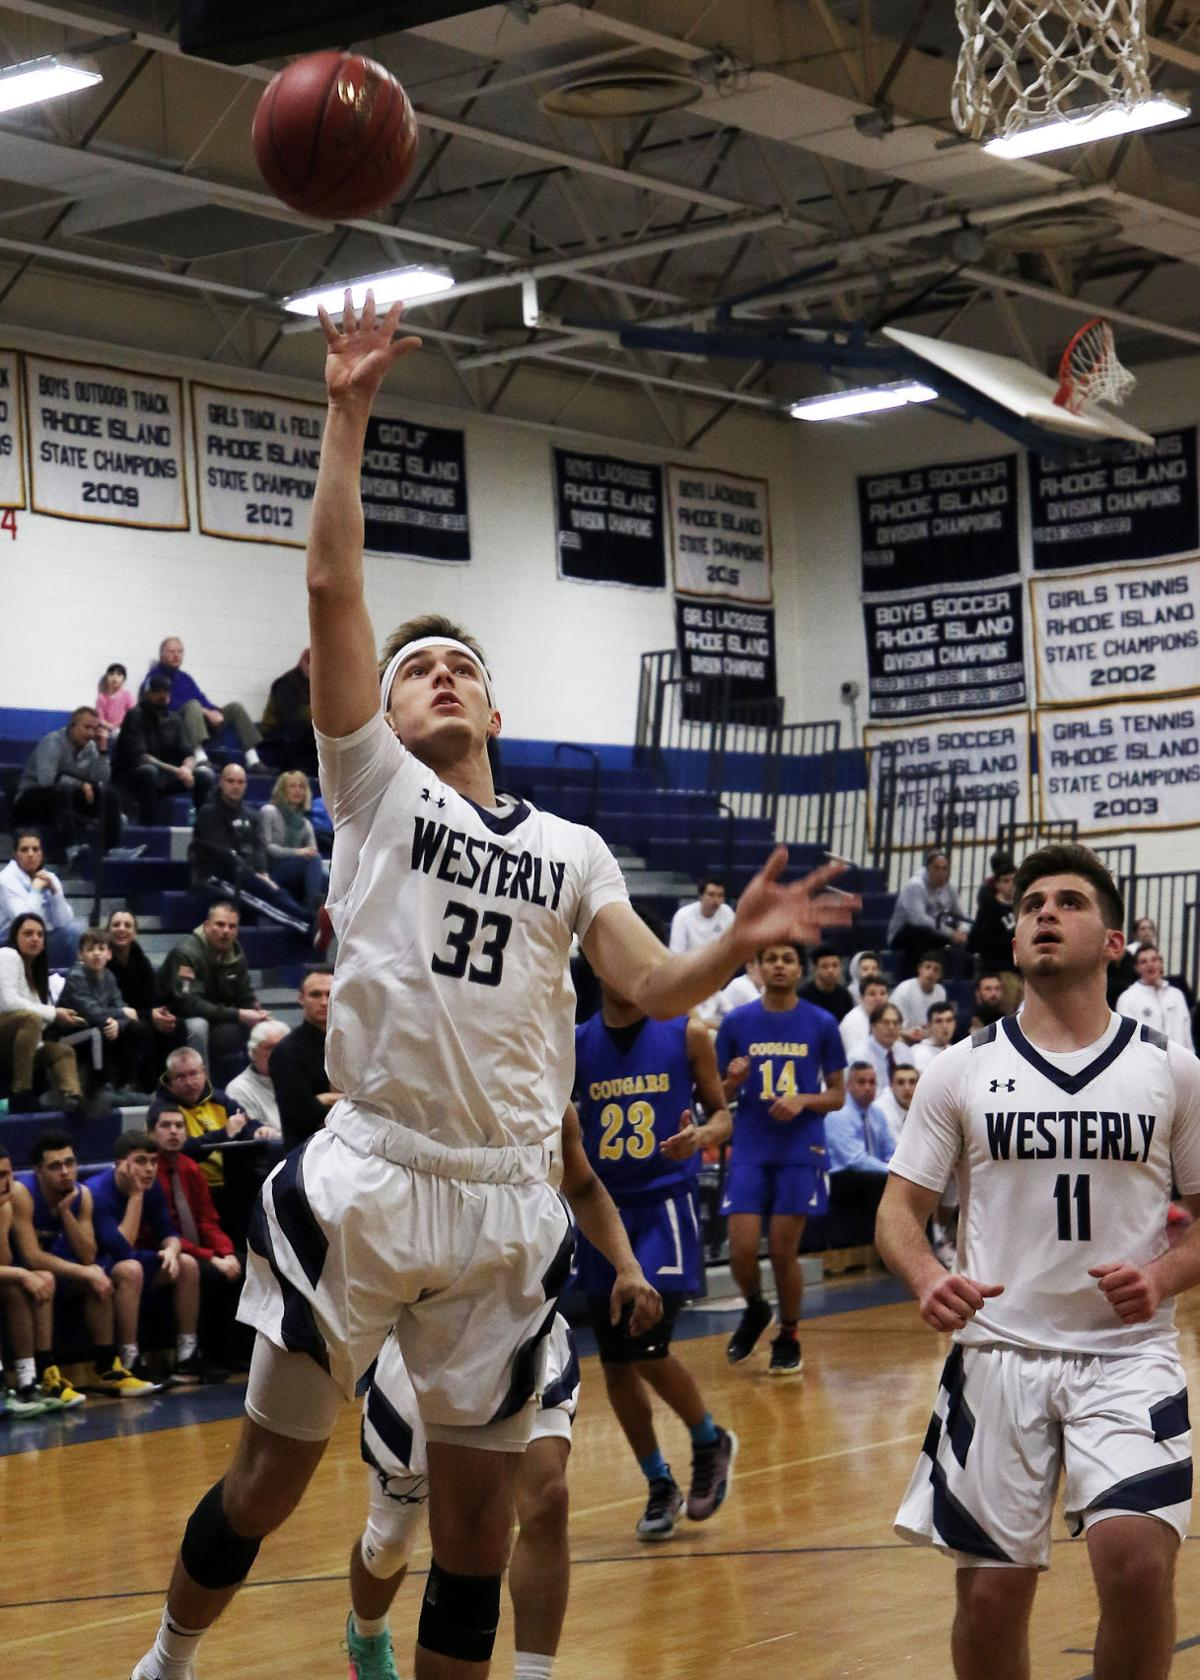 Chas Morgan (33) lays one up for Westerly while teammate Cole Riley (11) looks on in the Westerly vs N. Providence boys' varsity basketball game played Tuesday evening, February 19th, 2019, at Westerly High School. | Jackie L. Turner, Special to The Sun.